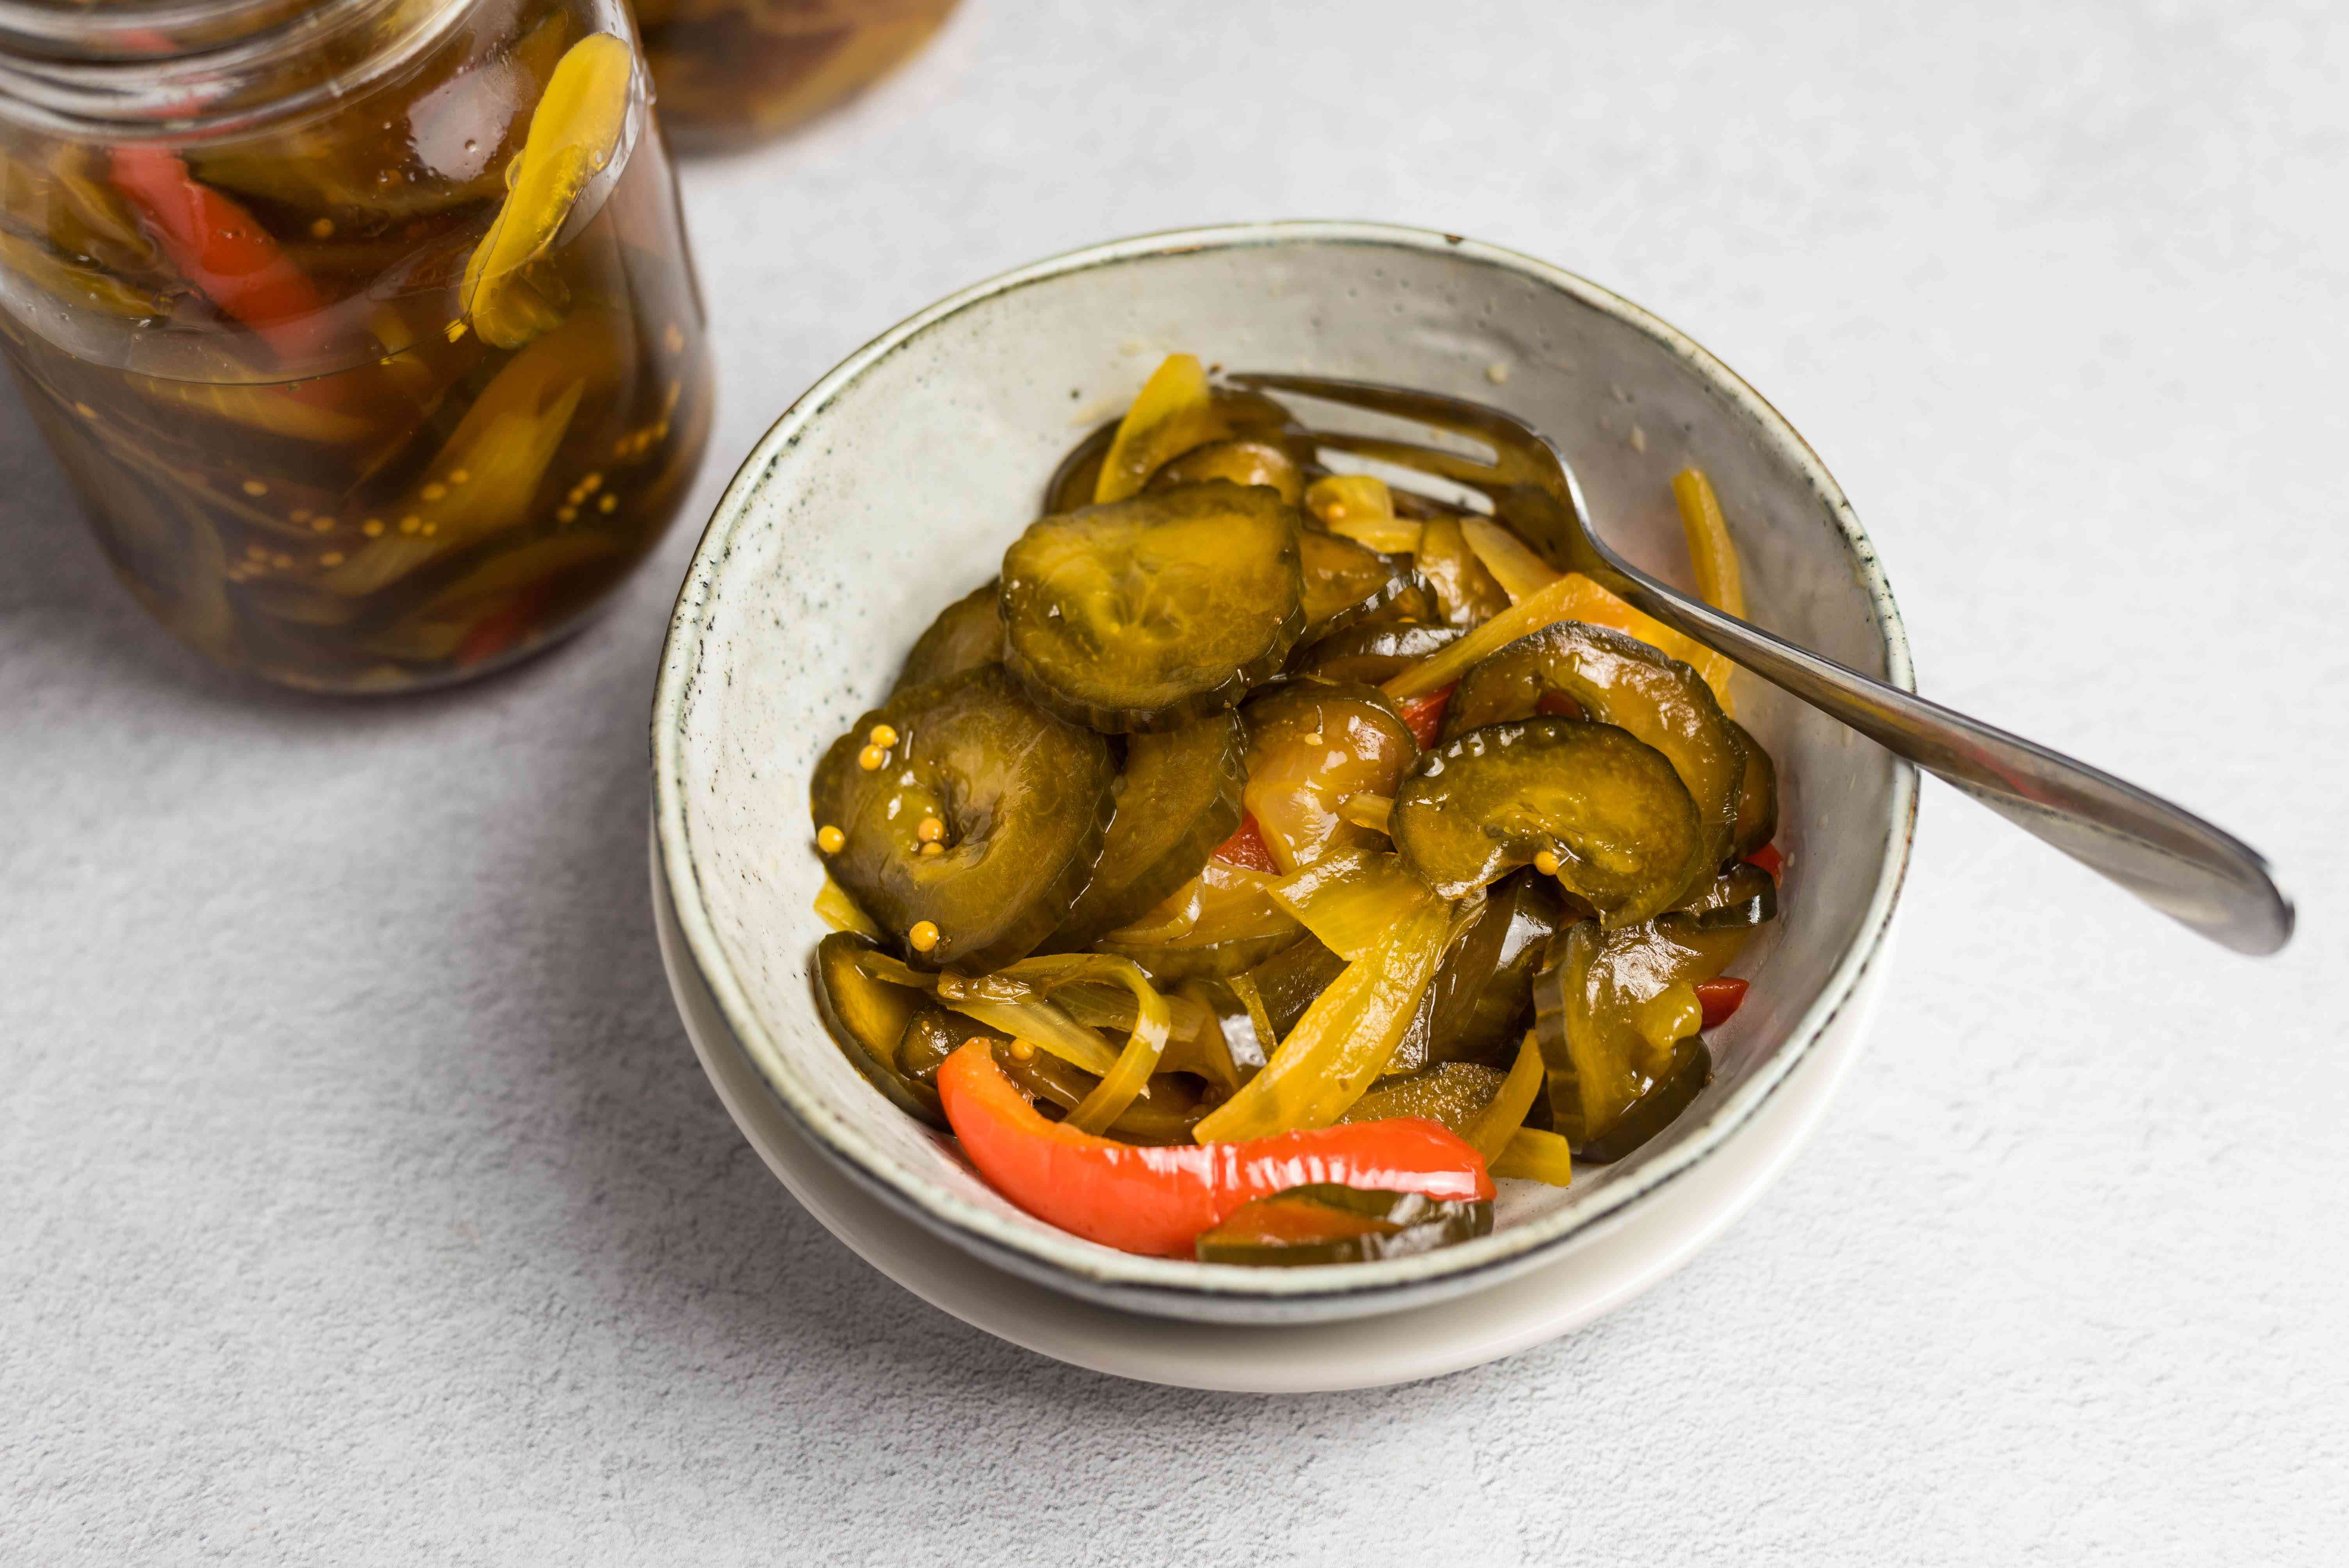 Classic bread and butter pickles recipe